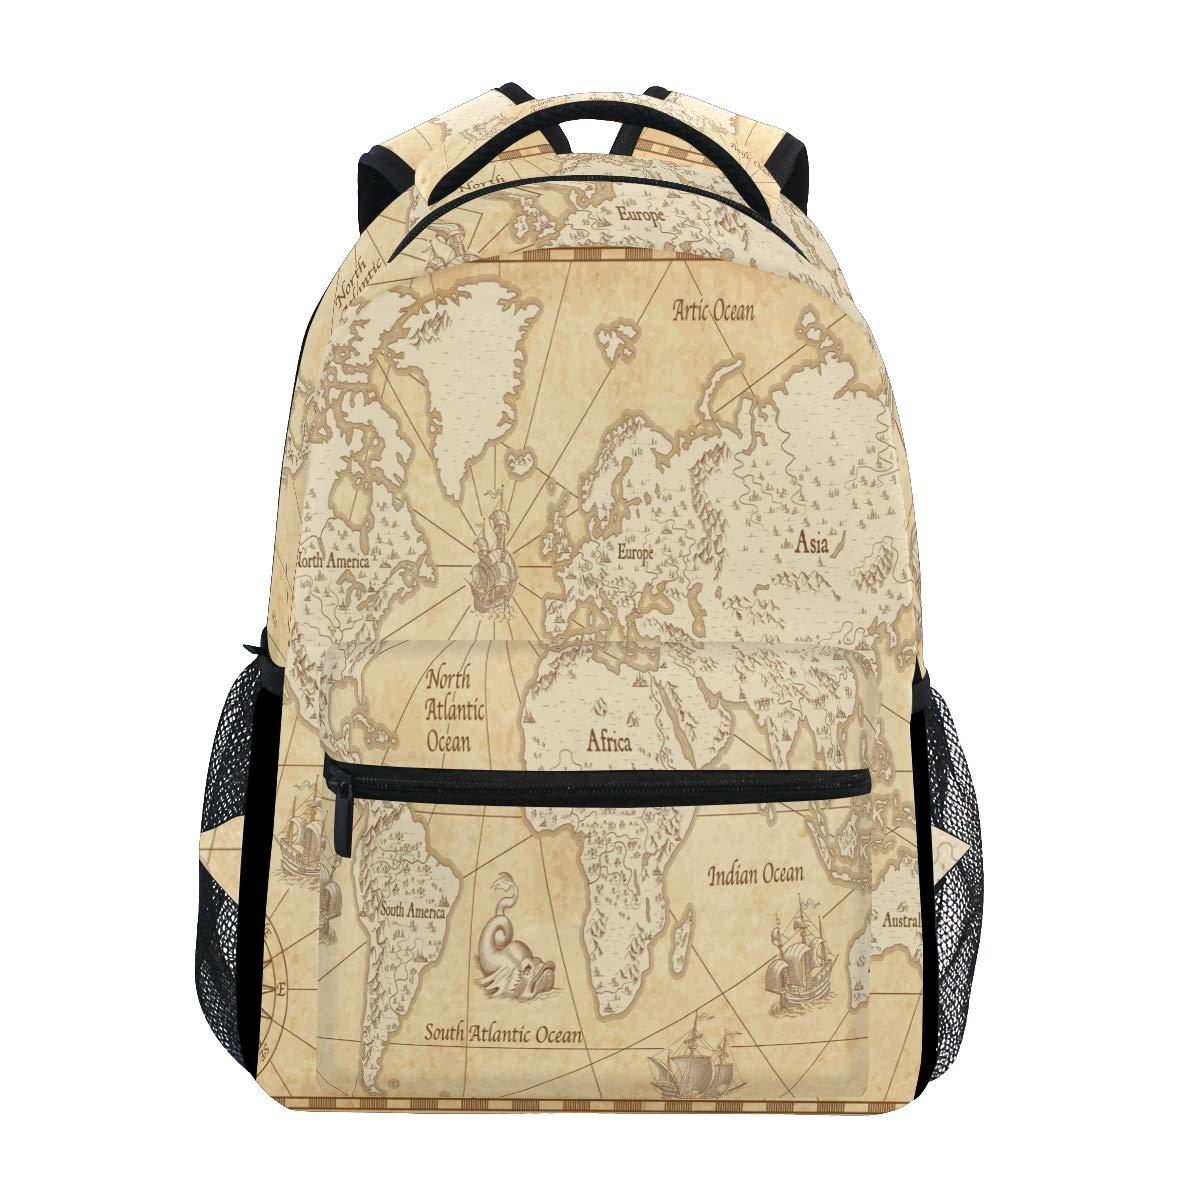 Amazon.com: AGONA Great Vintage World Map Stylish ... on map shoes, map luggage, map boots, map crossbody, map skirt, map phone case, map jacket, map scarf, map white, map trunk, map suitcase, map wallet, map sweater,